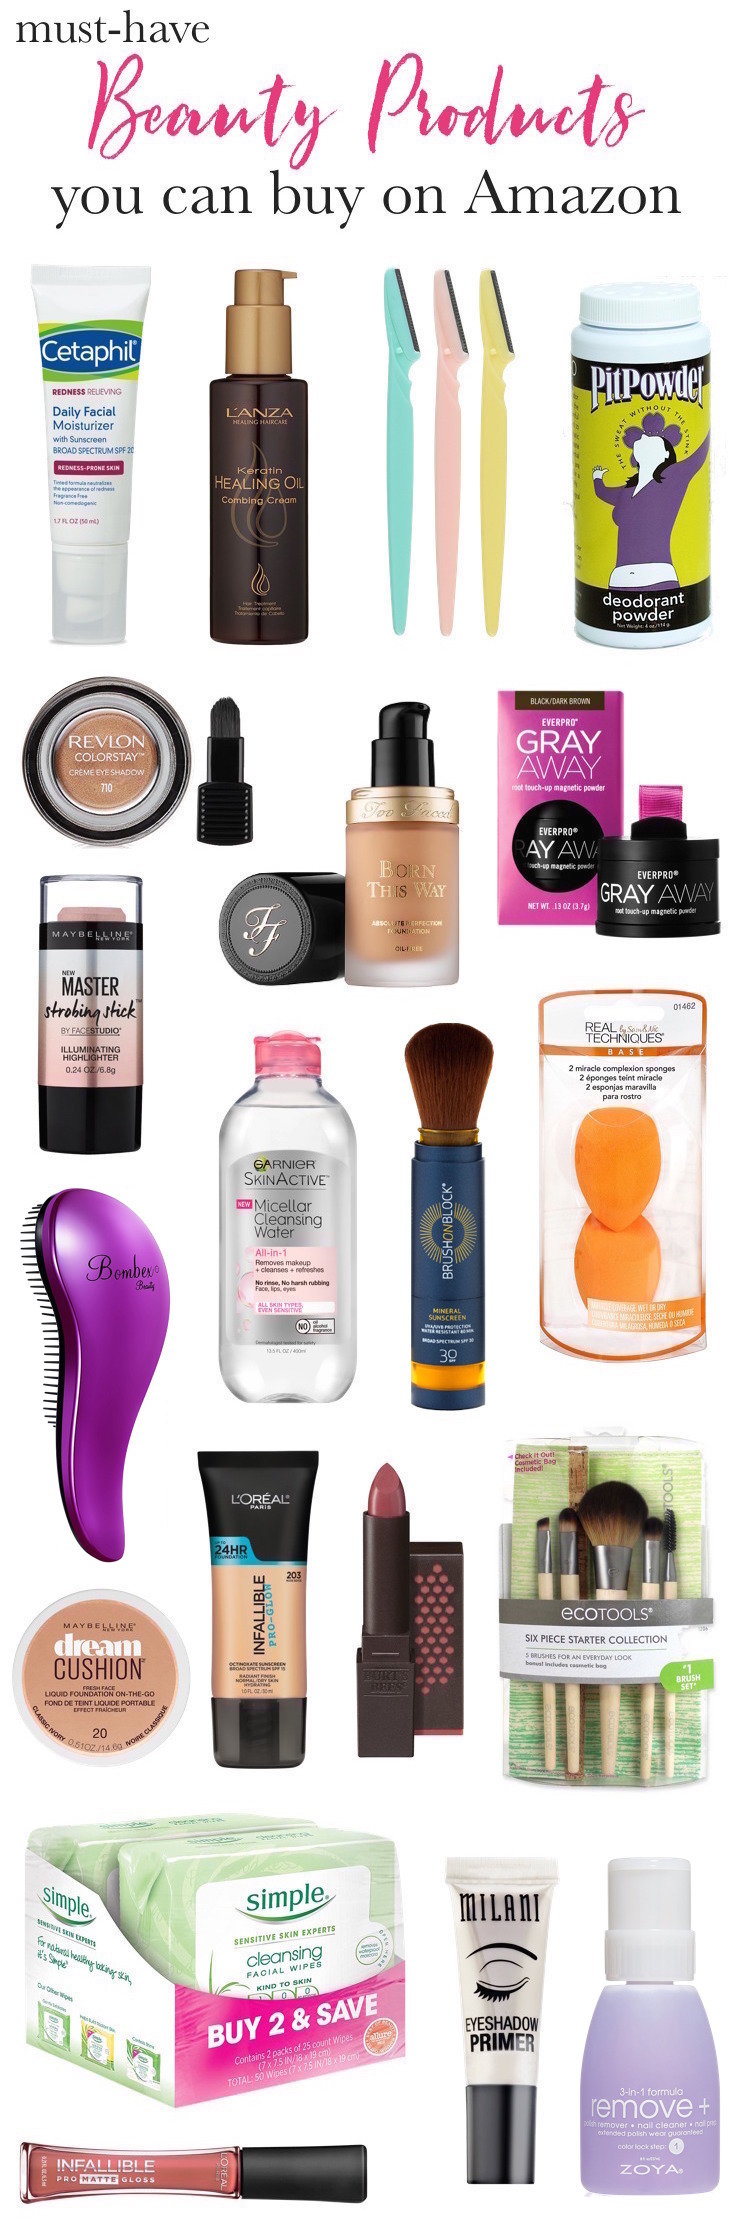 Fabulous beauty finds on Amazon Prime! Everything from value-size facial cleansing wipes to little-known indie brands can be found at affordable prices!